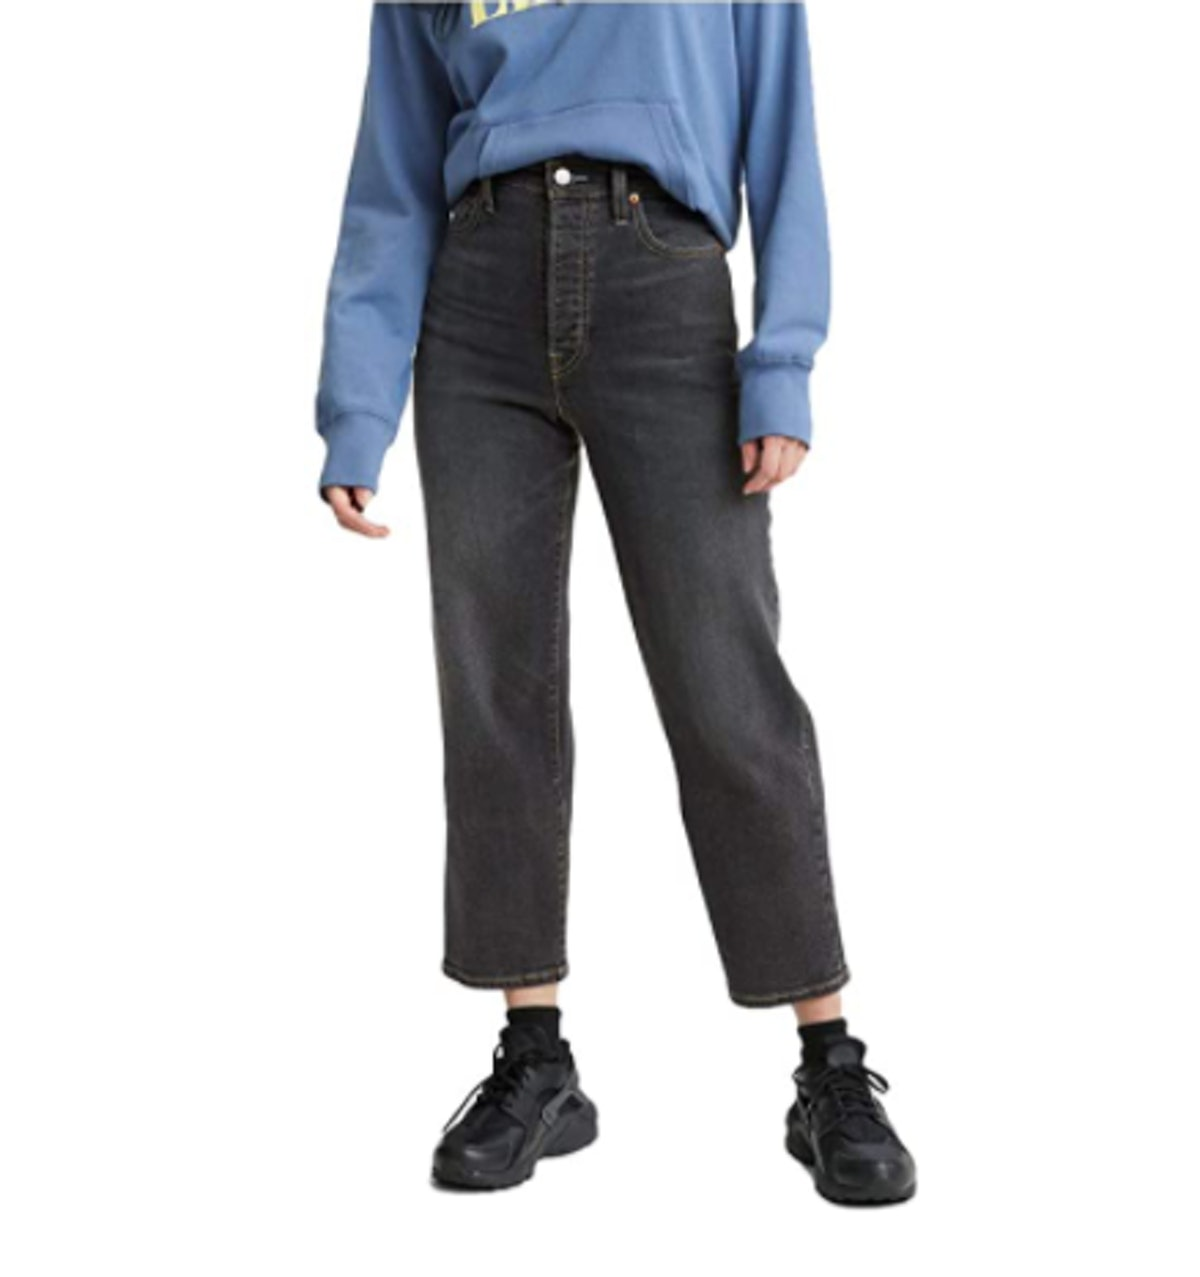 Levi's Ribcage Straight Ankle Jeans